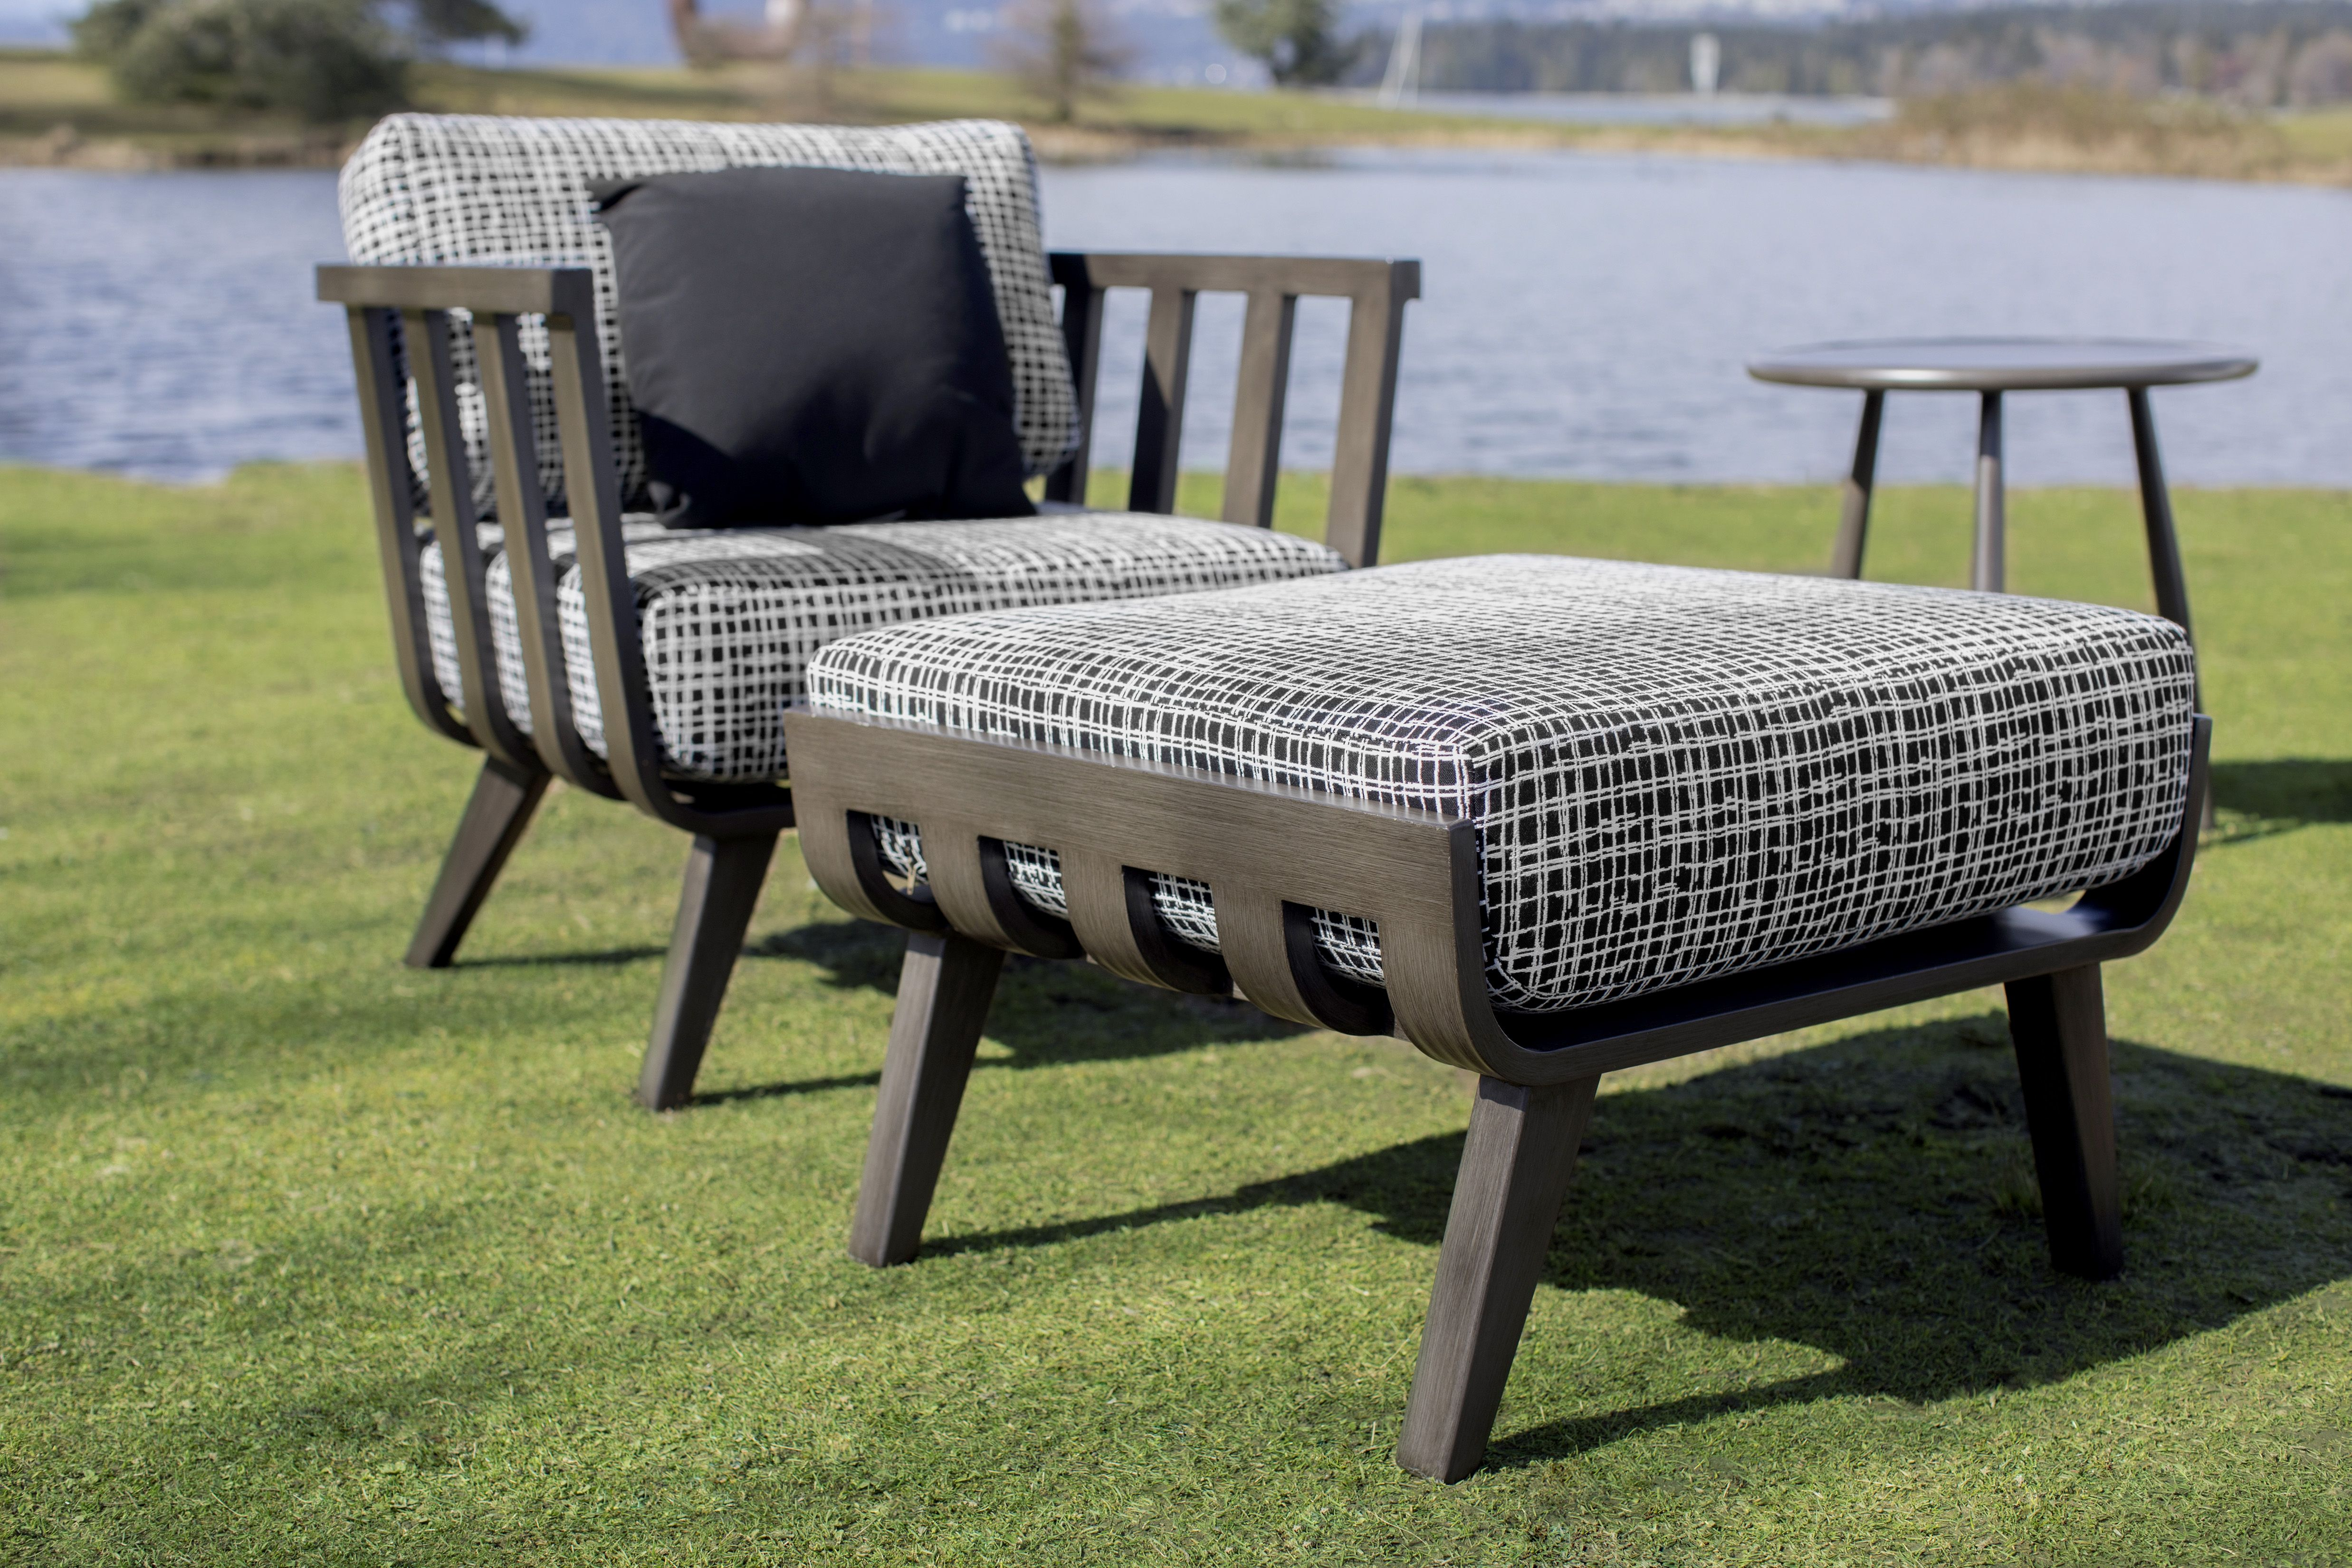 This High Style Design Modular Collection By Ratana Truly